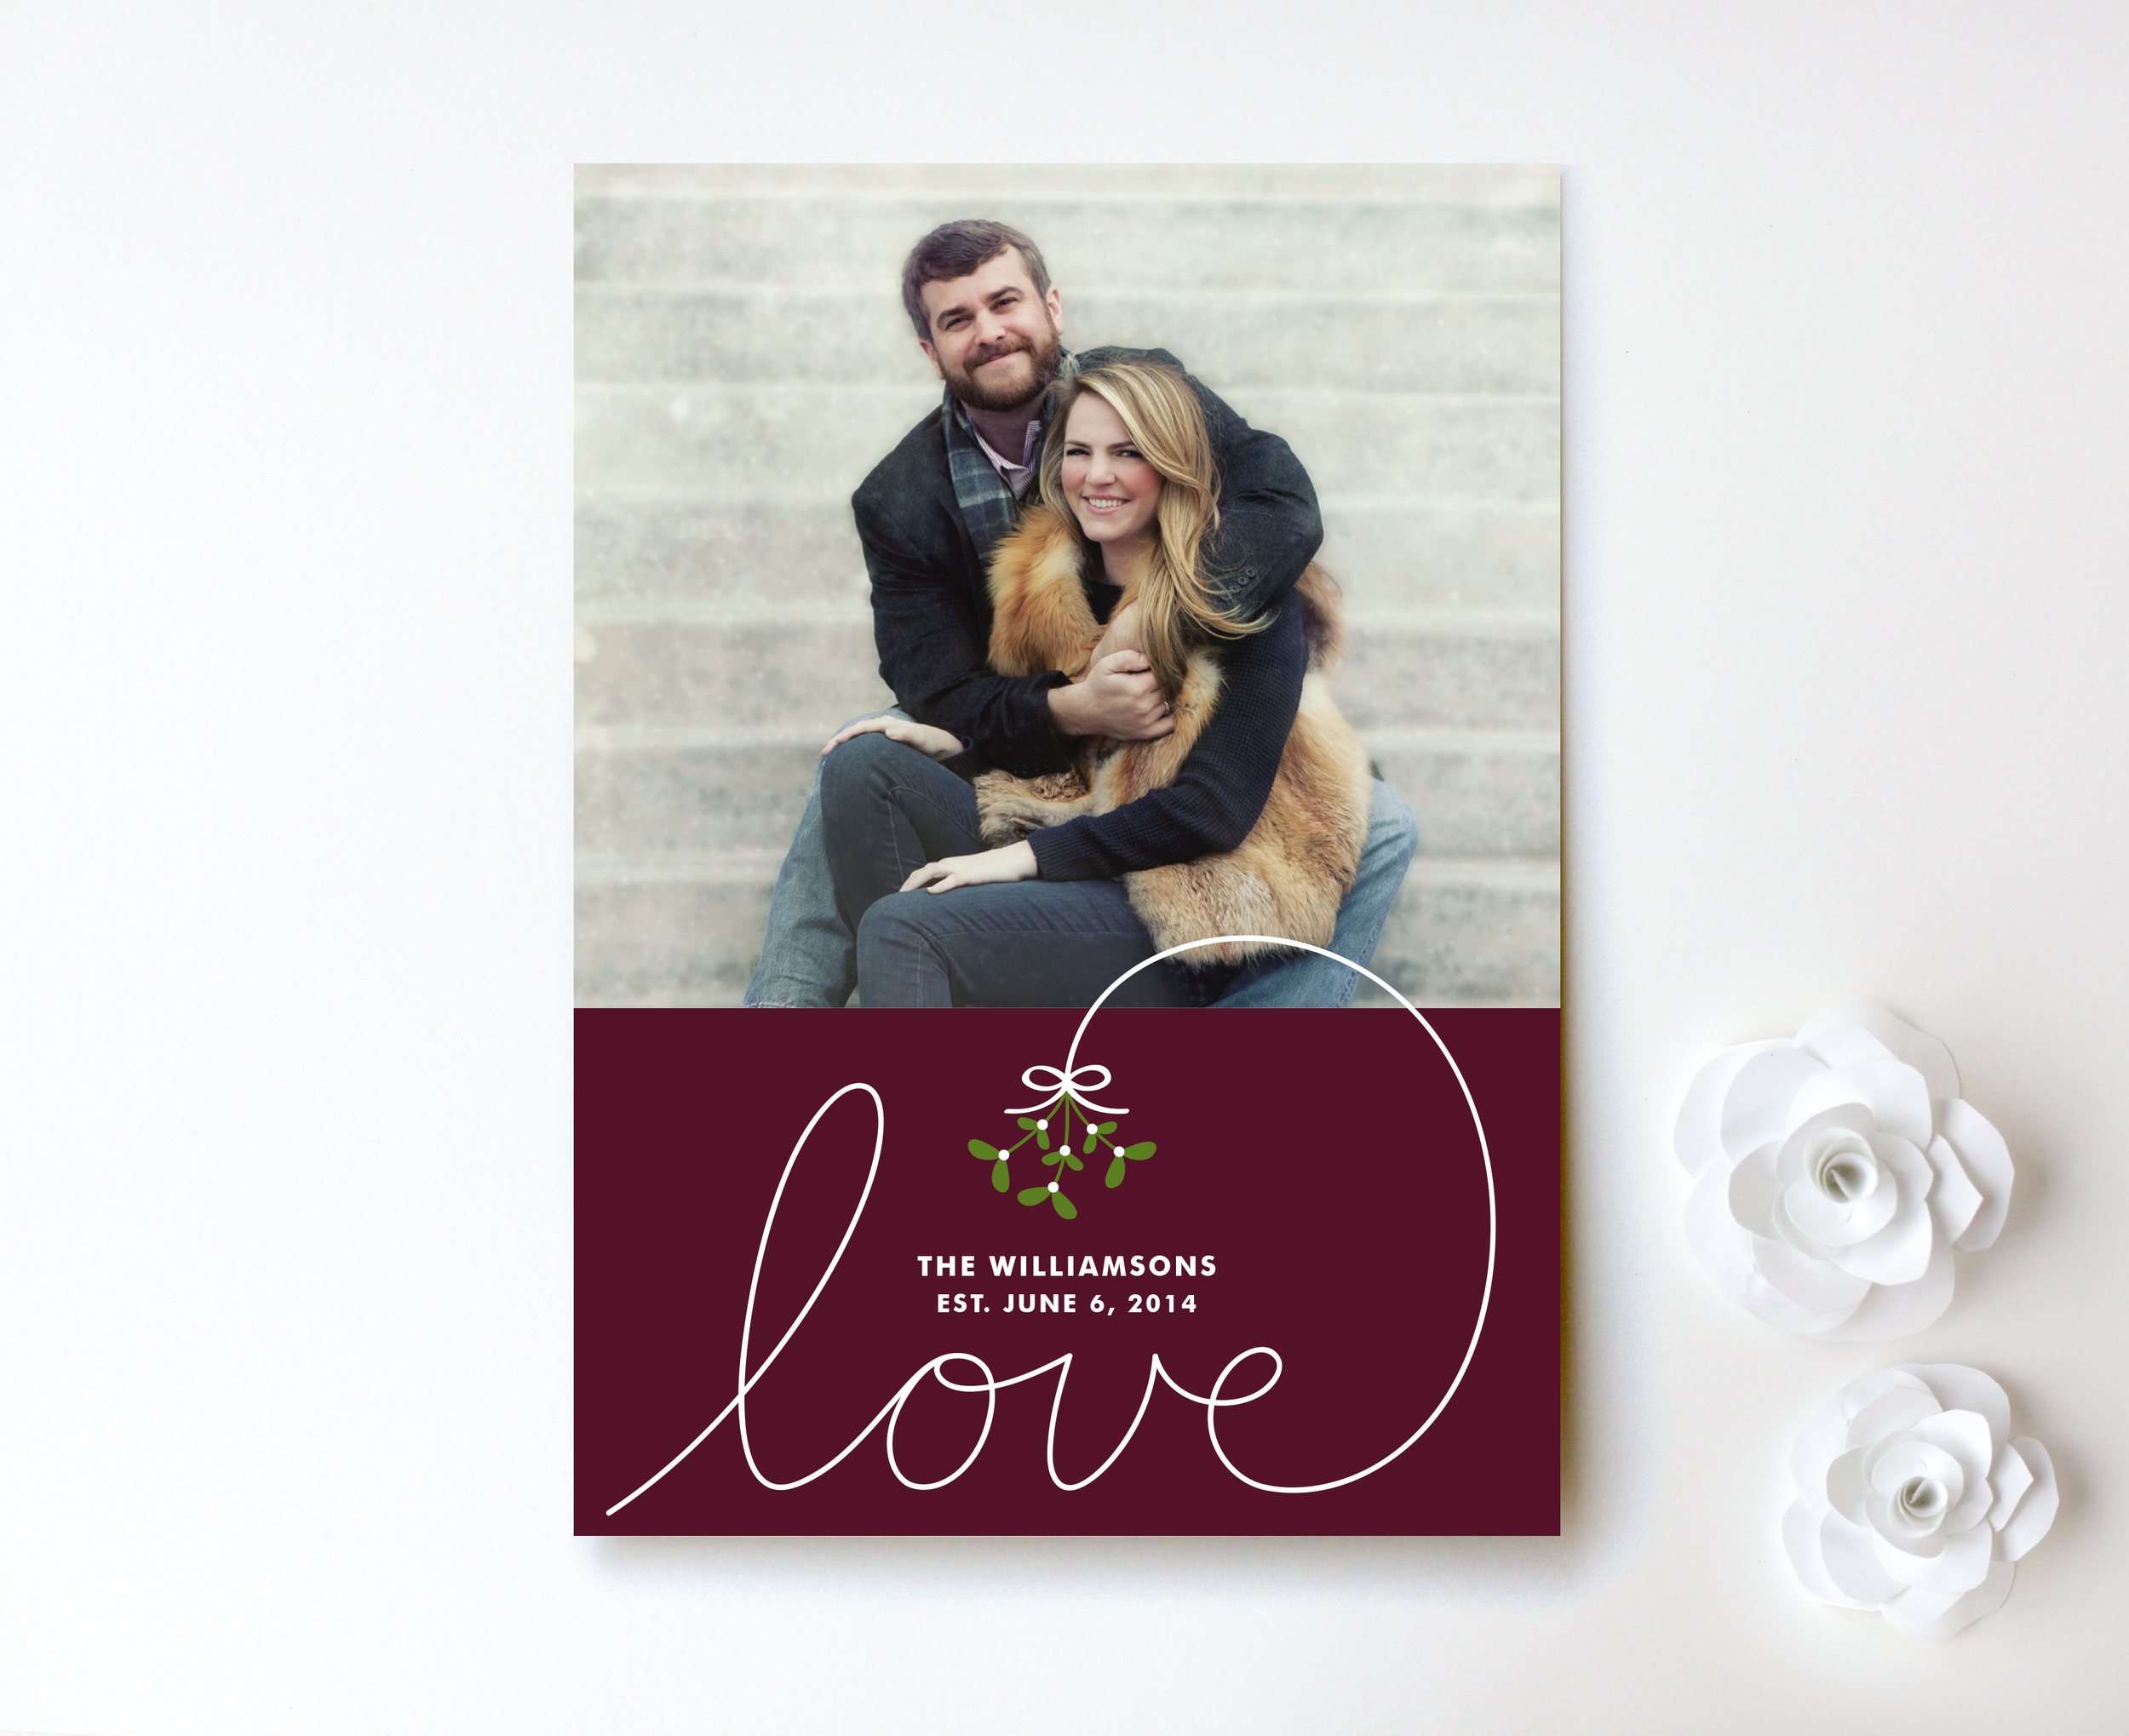 Under the Mistletoe Holiday Photo Card by Kim Dietrich Elam for Minted 2.jpg